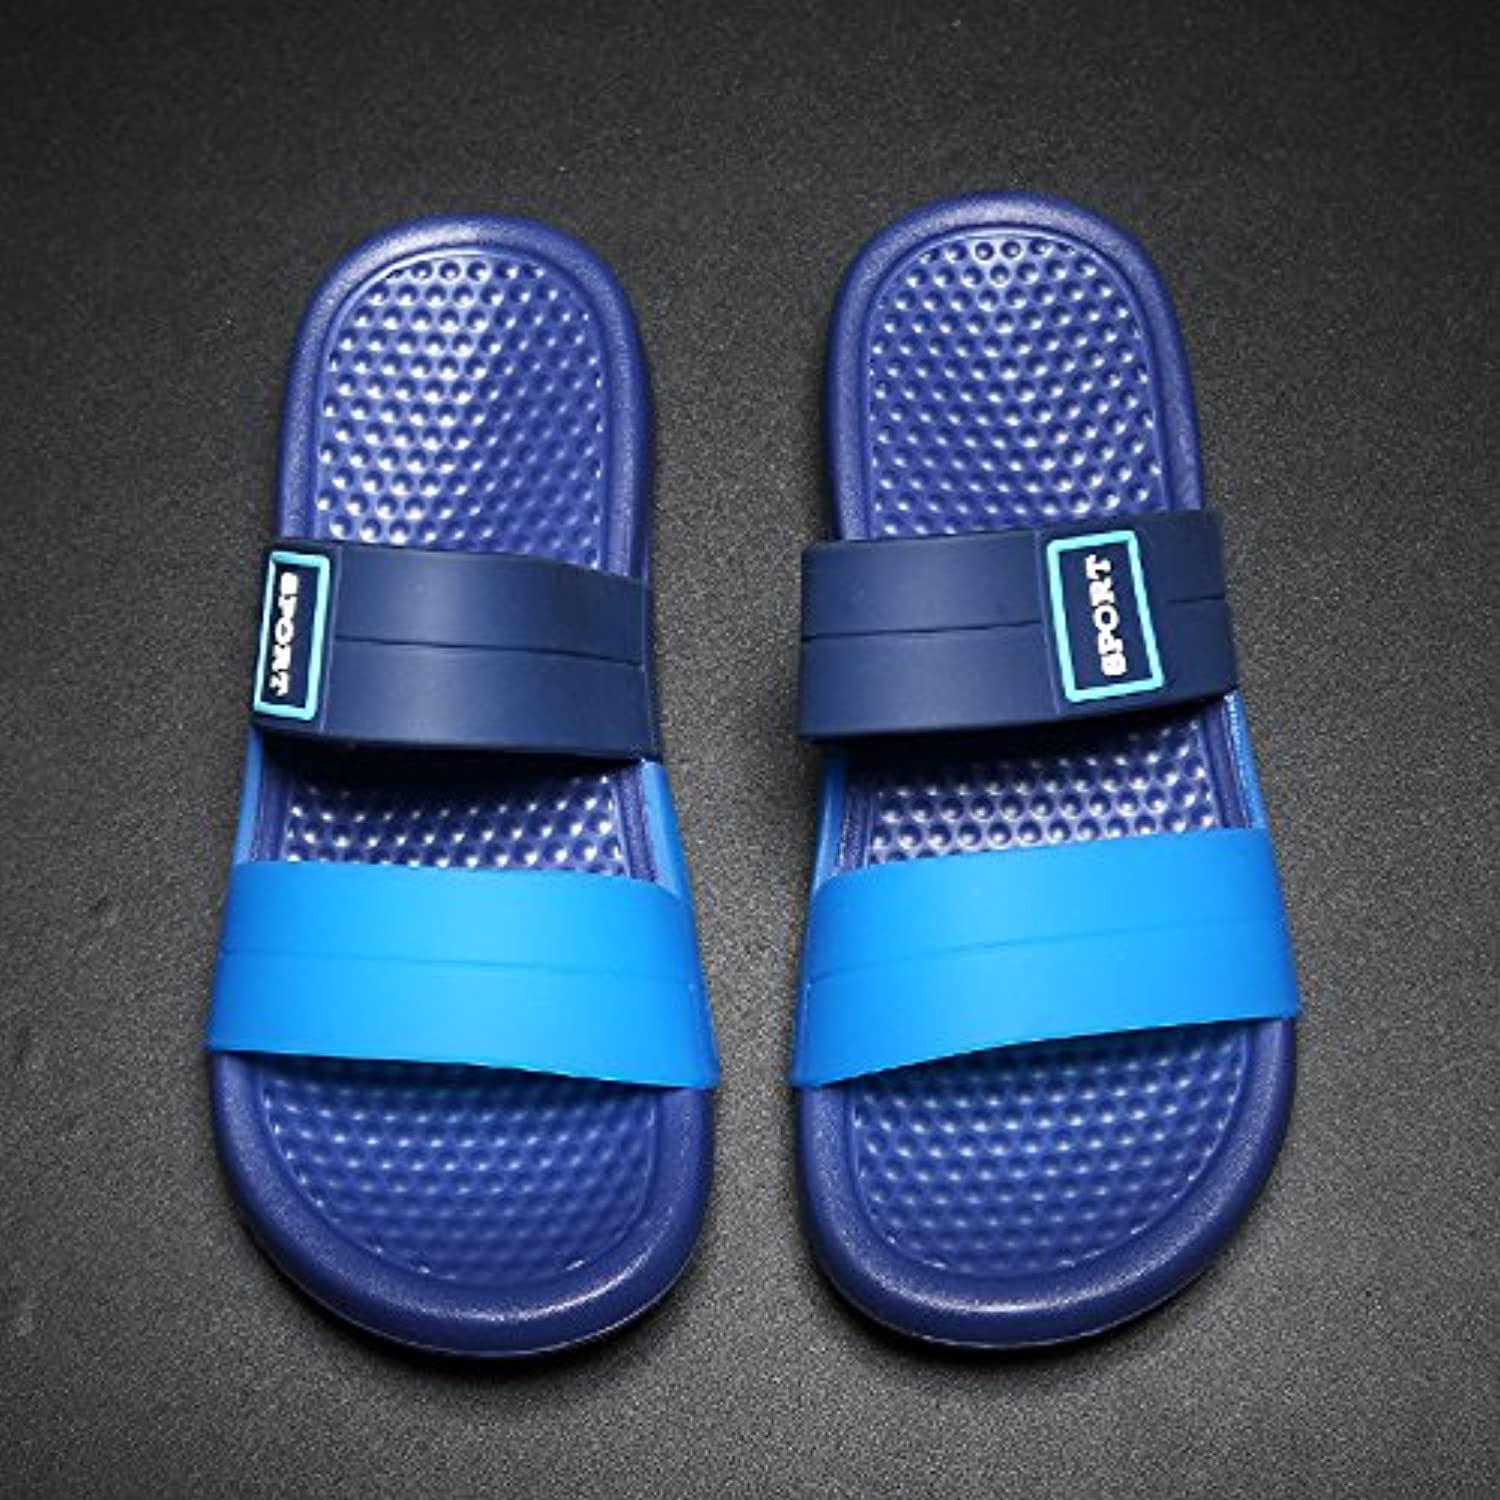 fankou Slippers Male Summer English Cool Drag and Wild Fashion Casual Non-Slip Men's Sandals,41, Blue